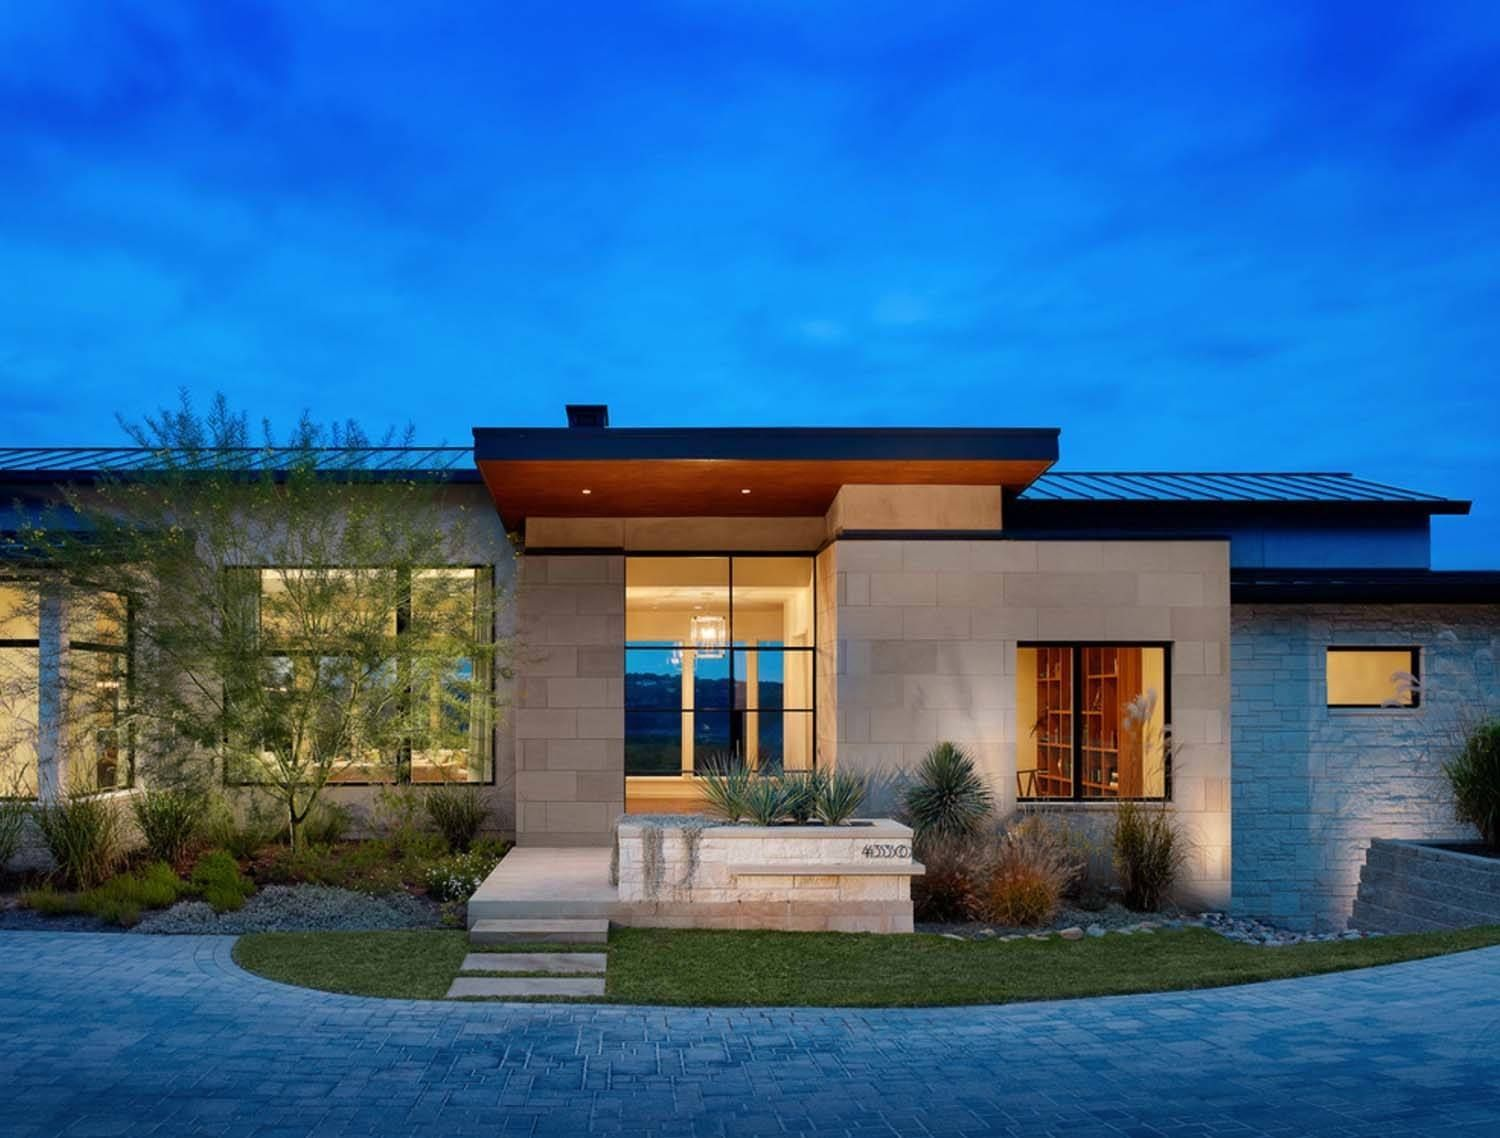 Texas Hill Country Home Boasts Inviting Design And Coveted